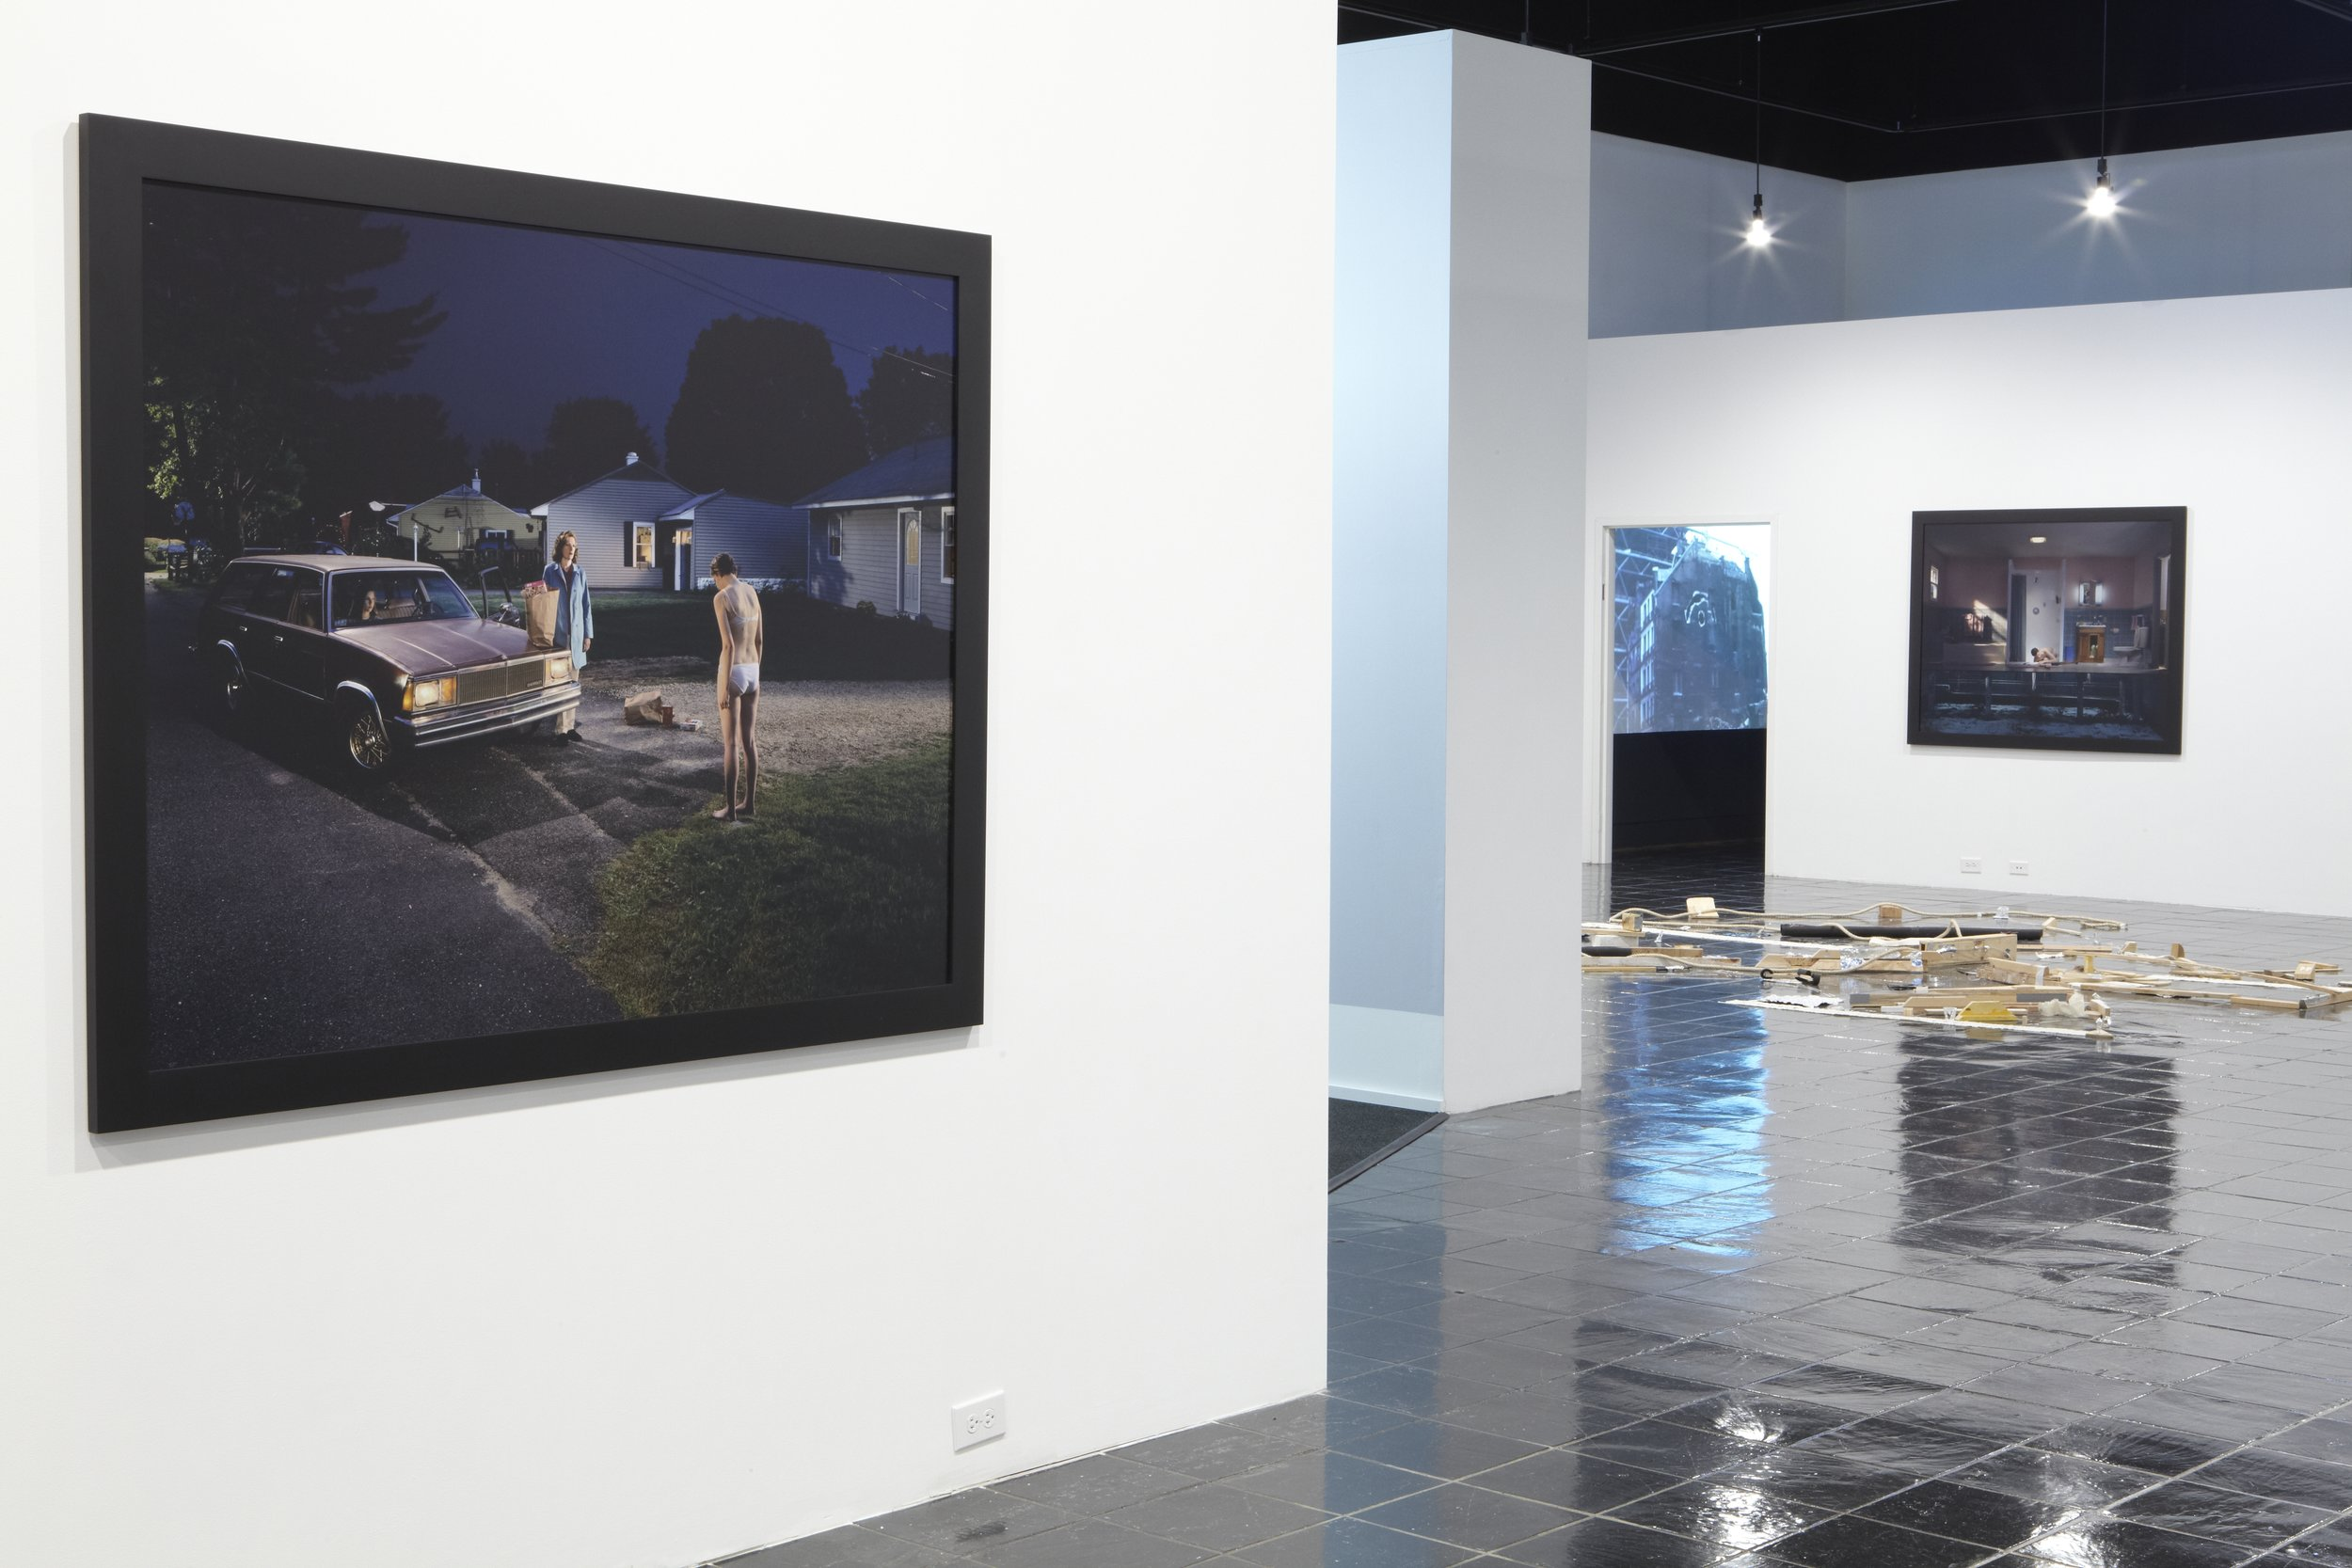 Gregory Crewdson,  Untitled , 2001–2002. Digital c-print, 48 x 60 inches. Courtesy The Broad Art Foundation, Santa Monica image courtesy of the artist and Luhring Augustine, New York.